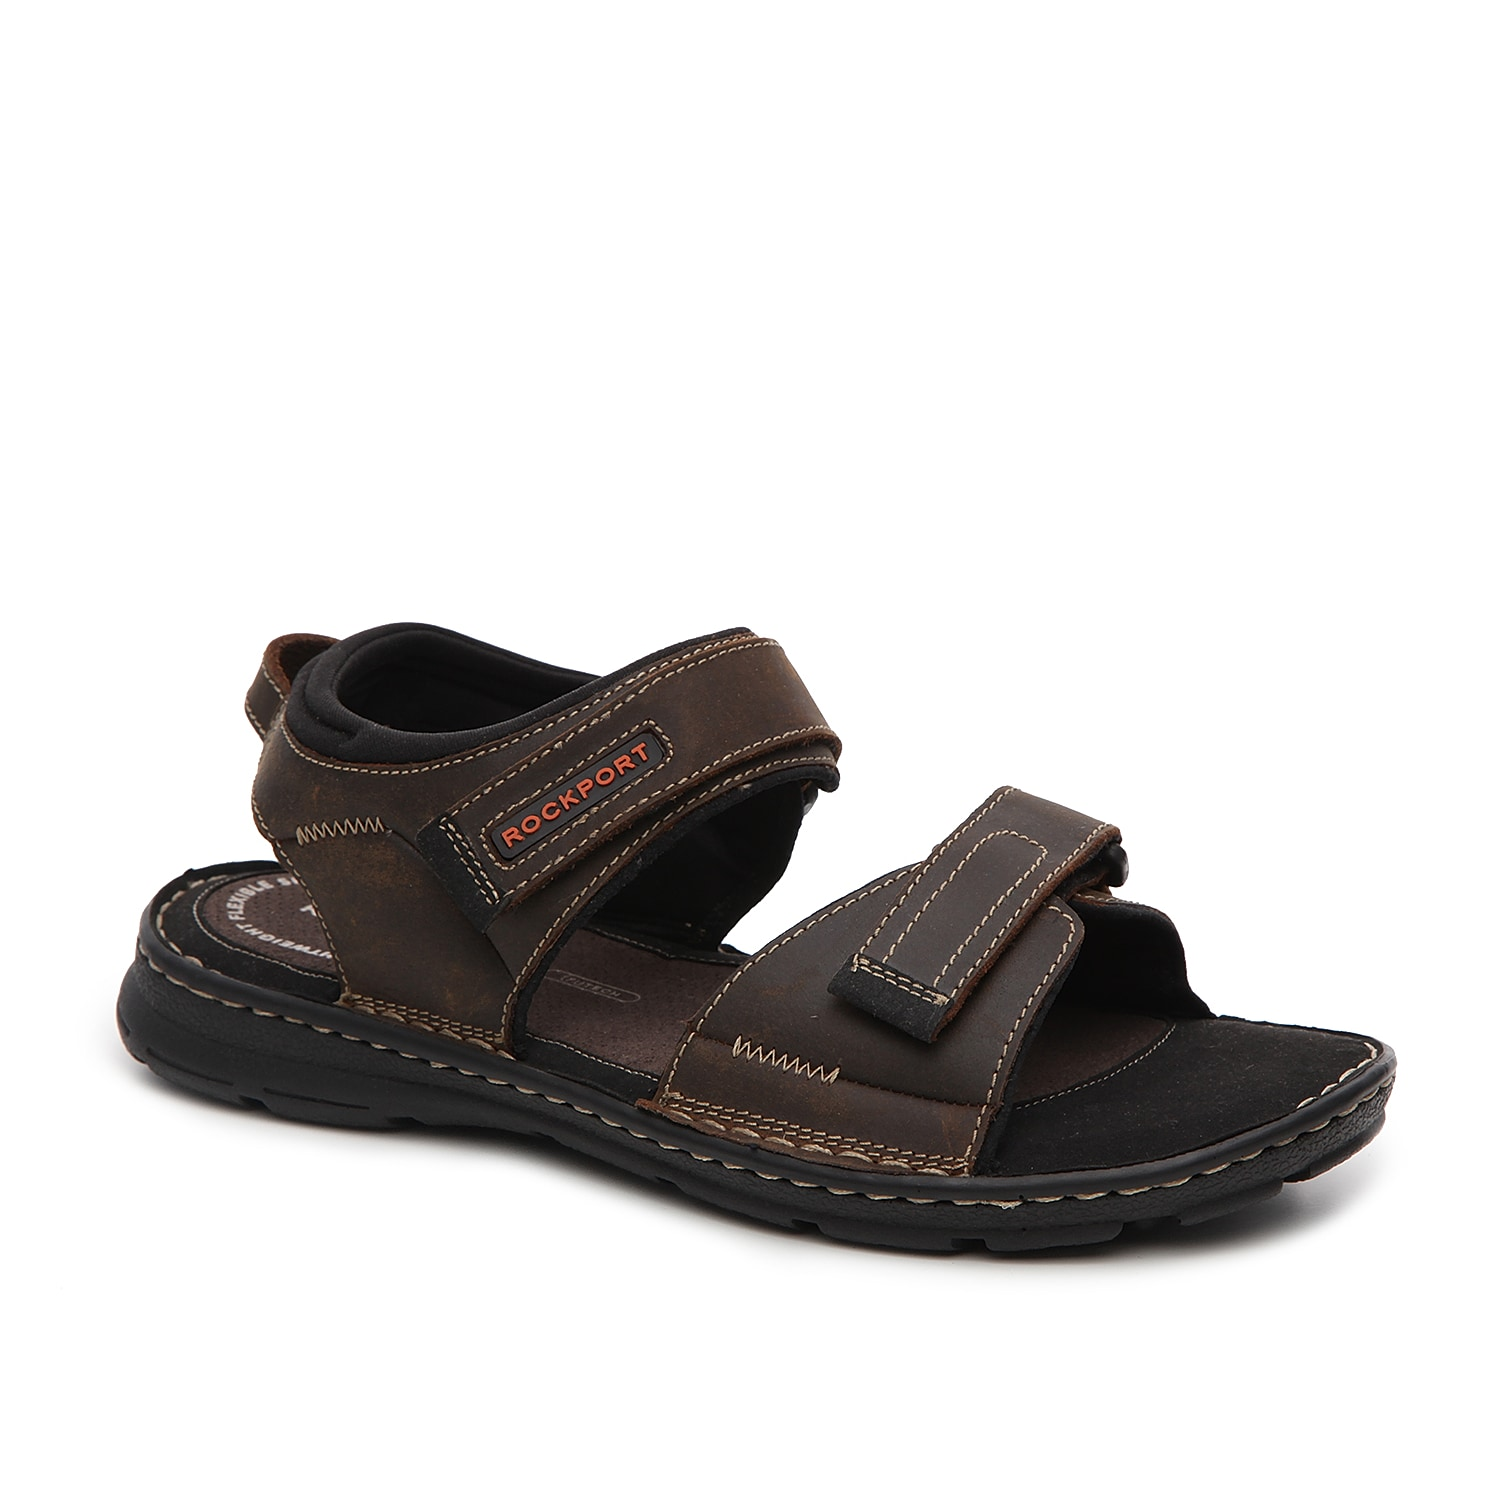 To add comfort and functionality to your wardrobe, add the Rockport Darwyn sandal to your shoe collection. These leather sandals will surely keep you comfy all day long!